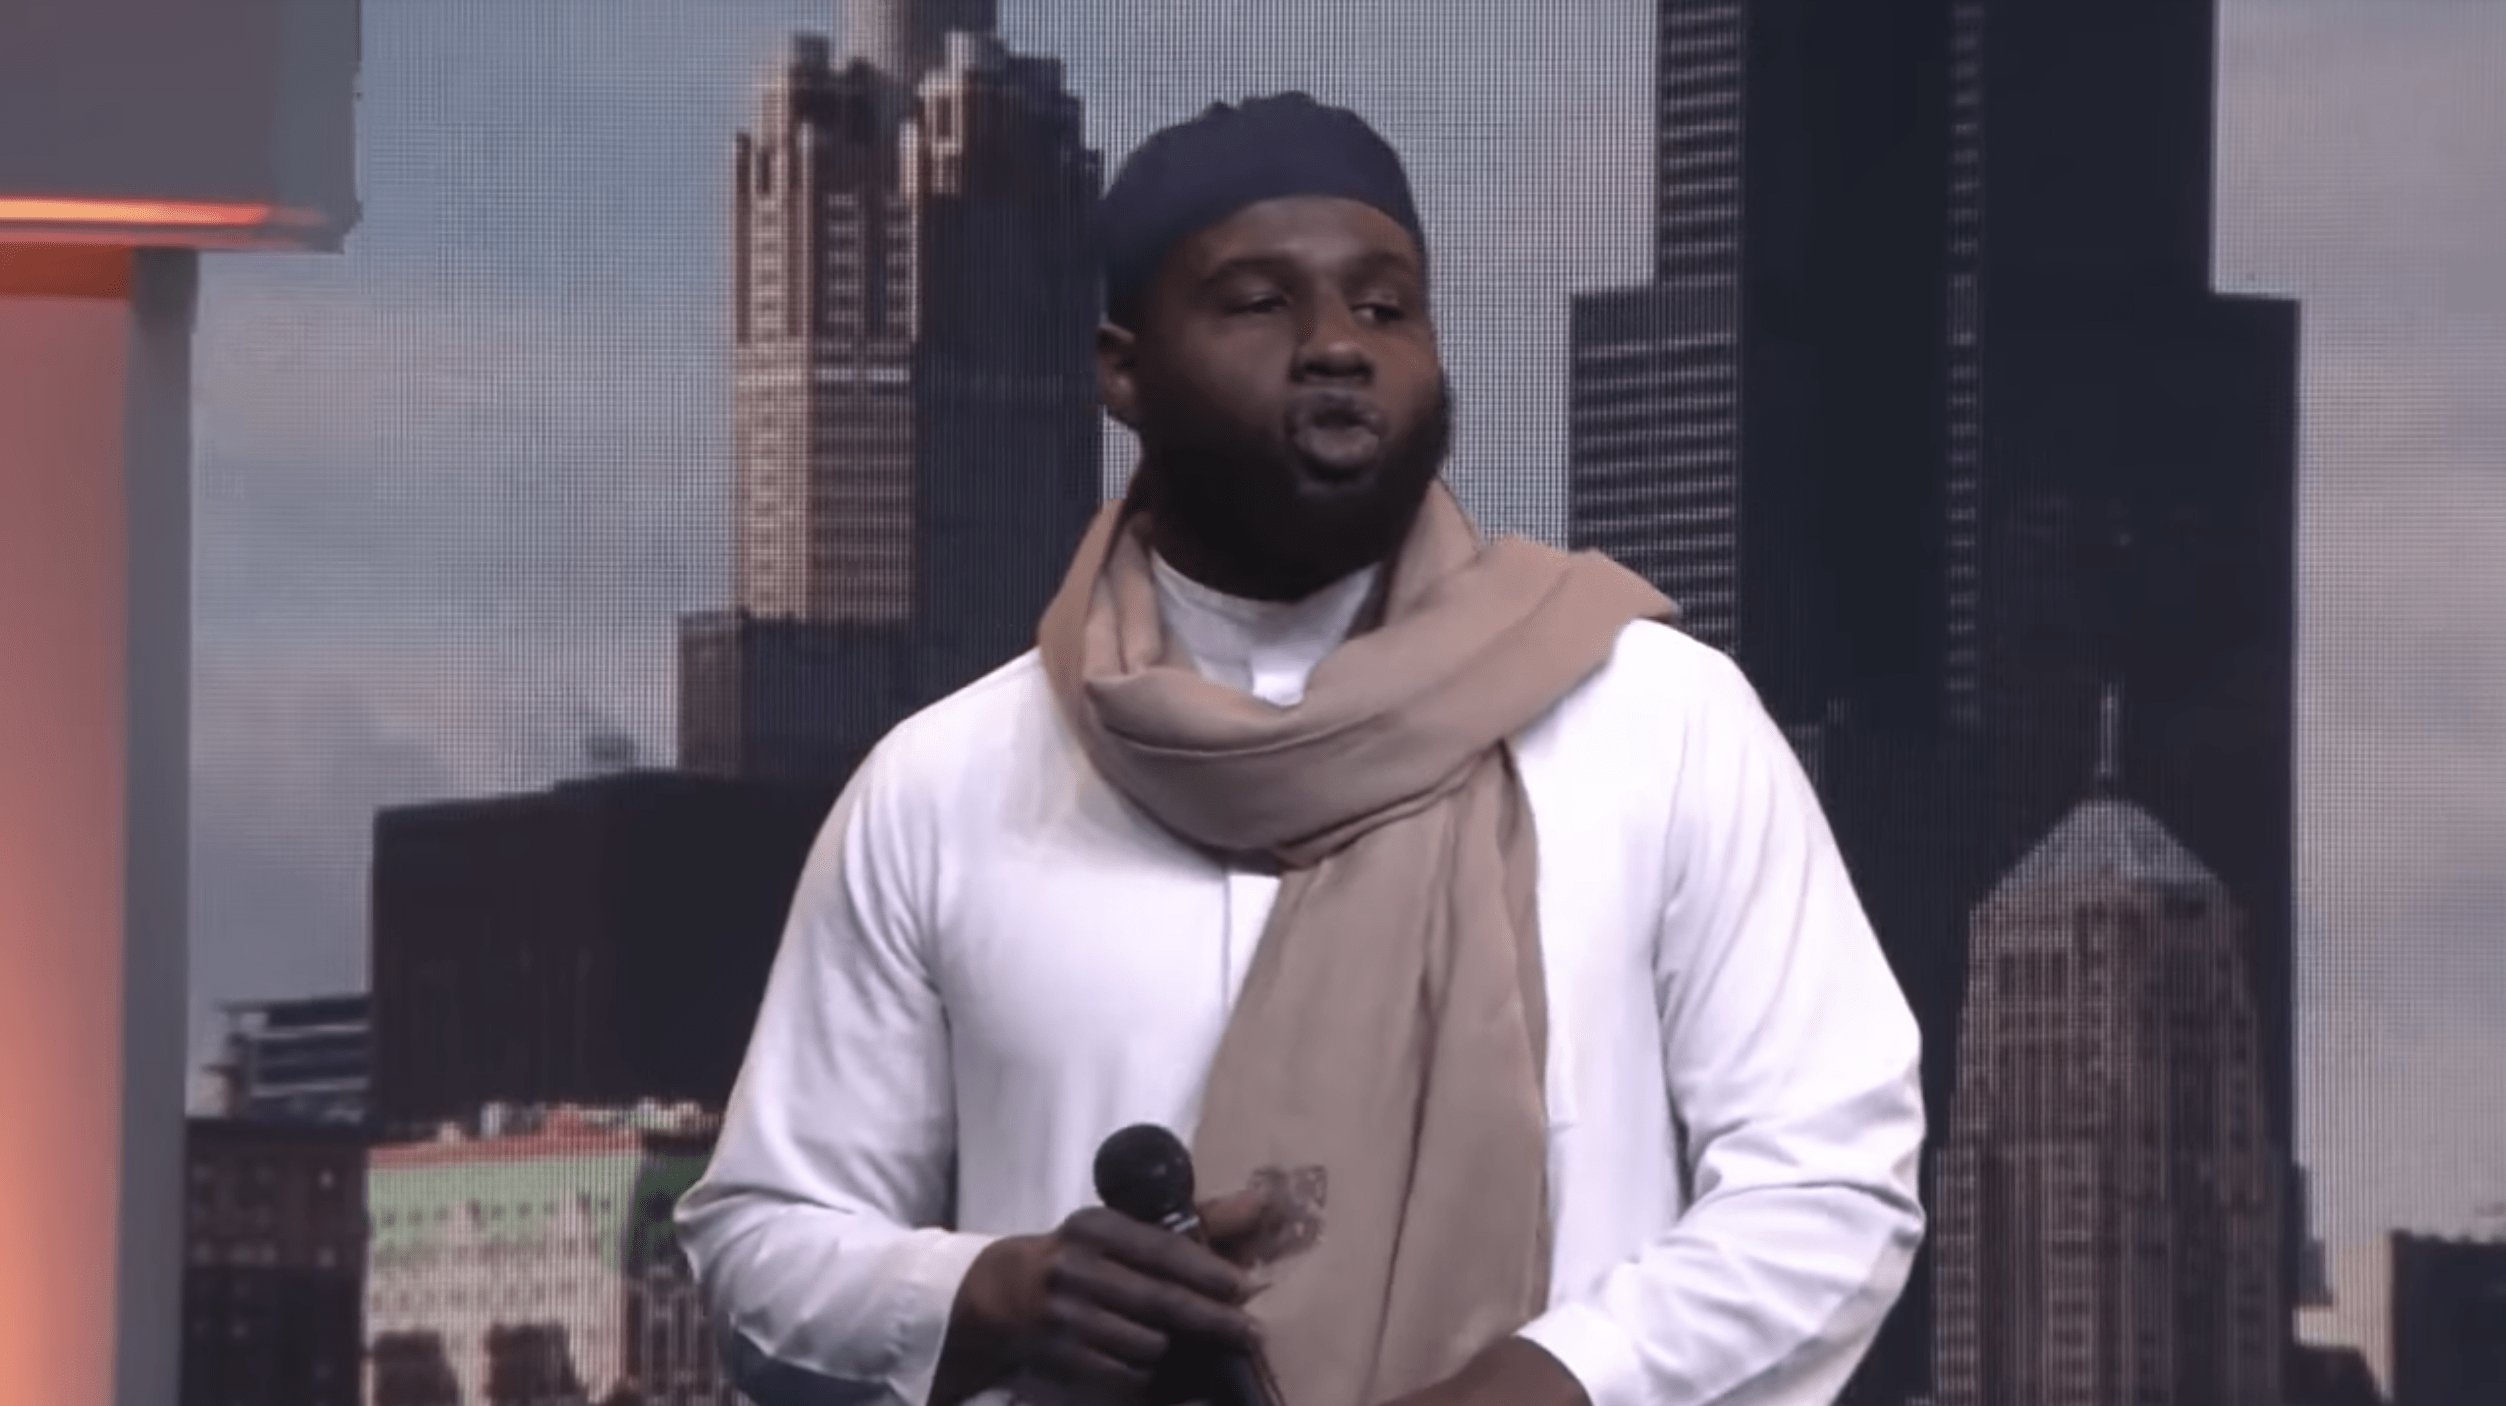 Ibn Ali Miller – Confident Muslim: On Finding Your Purpose and Investing in the Youth